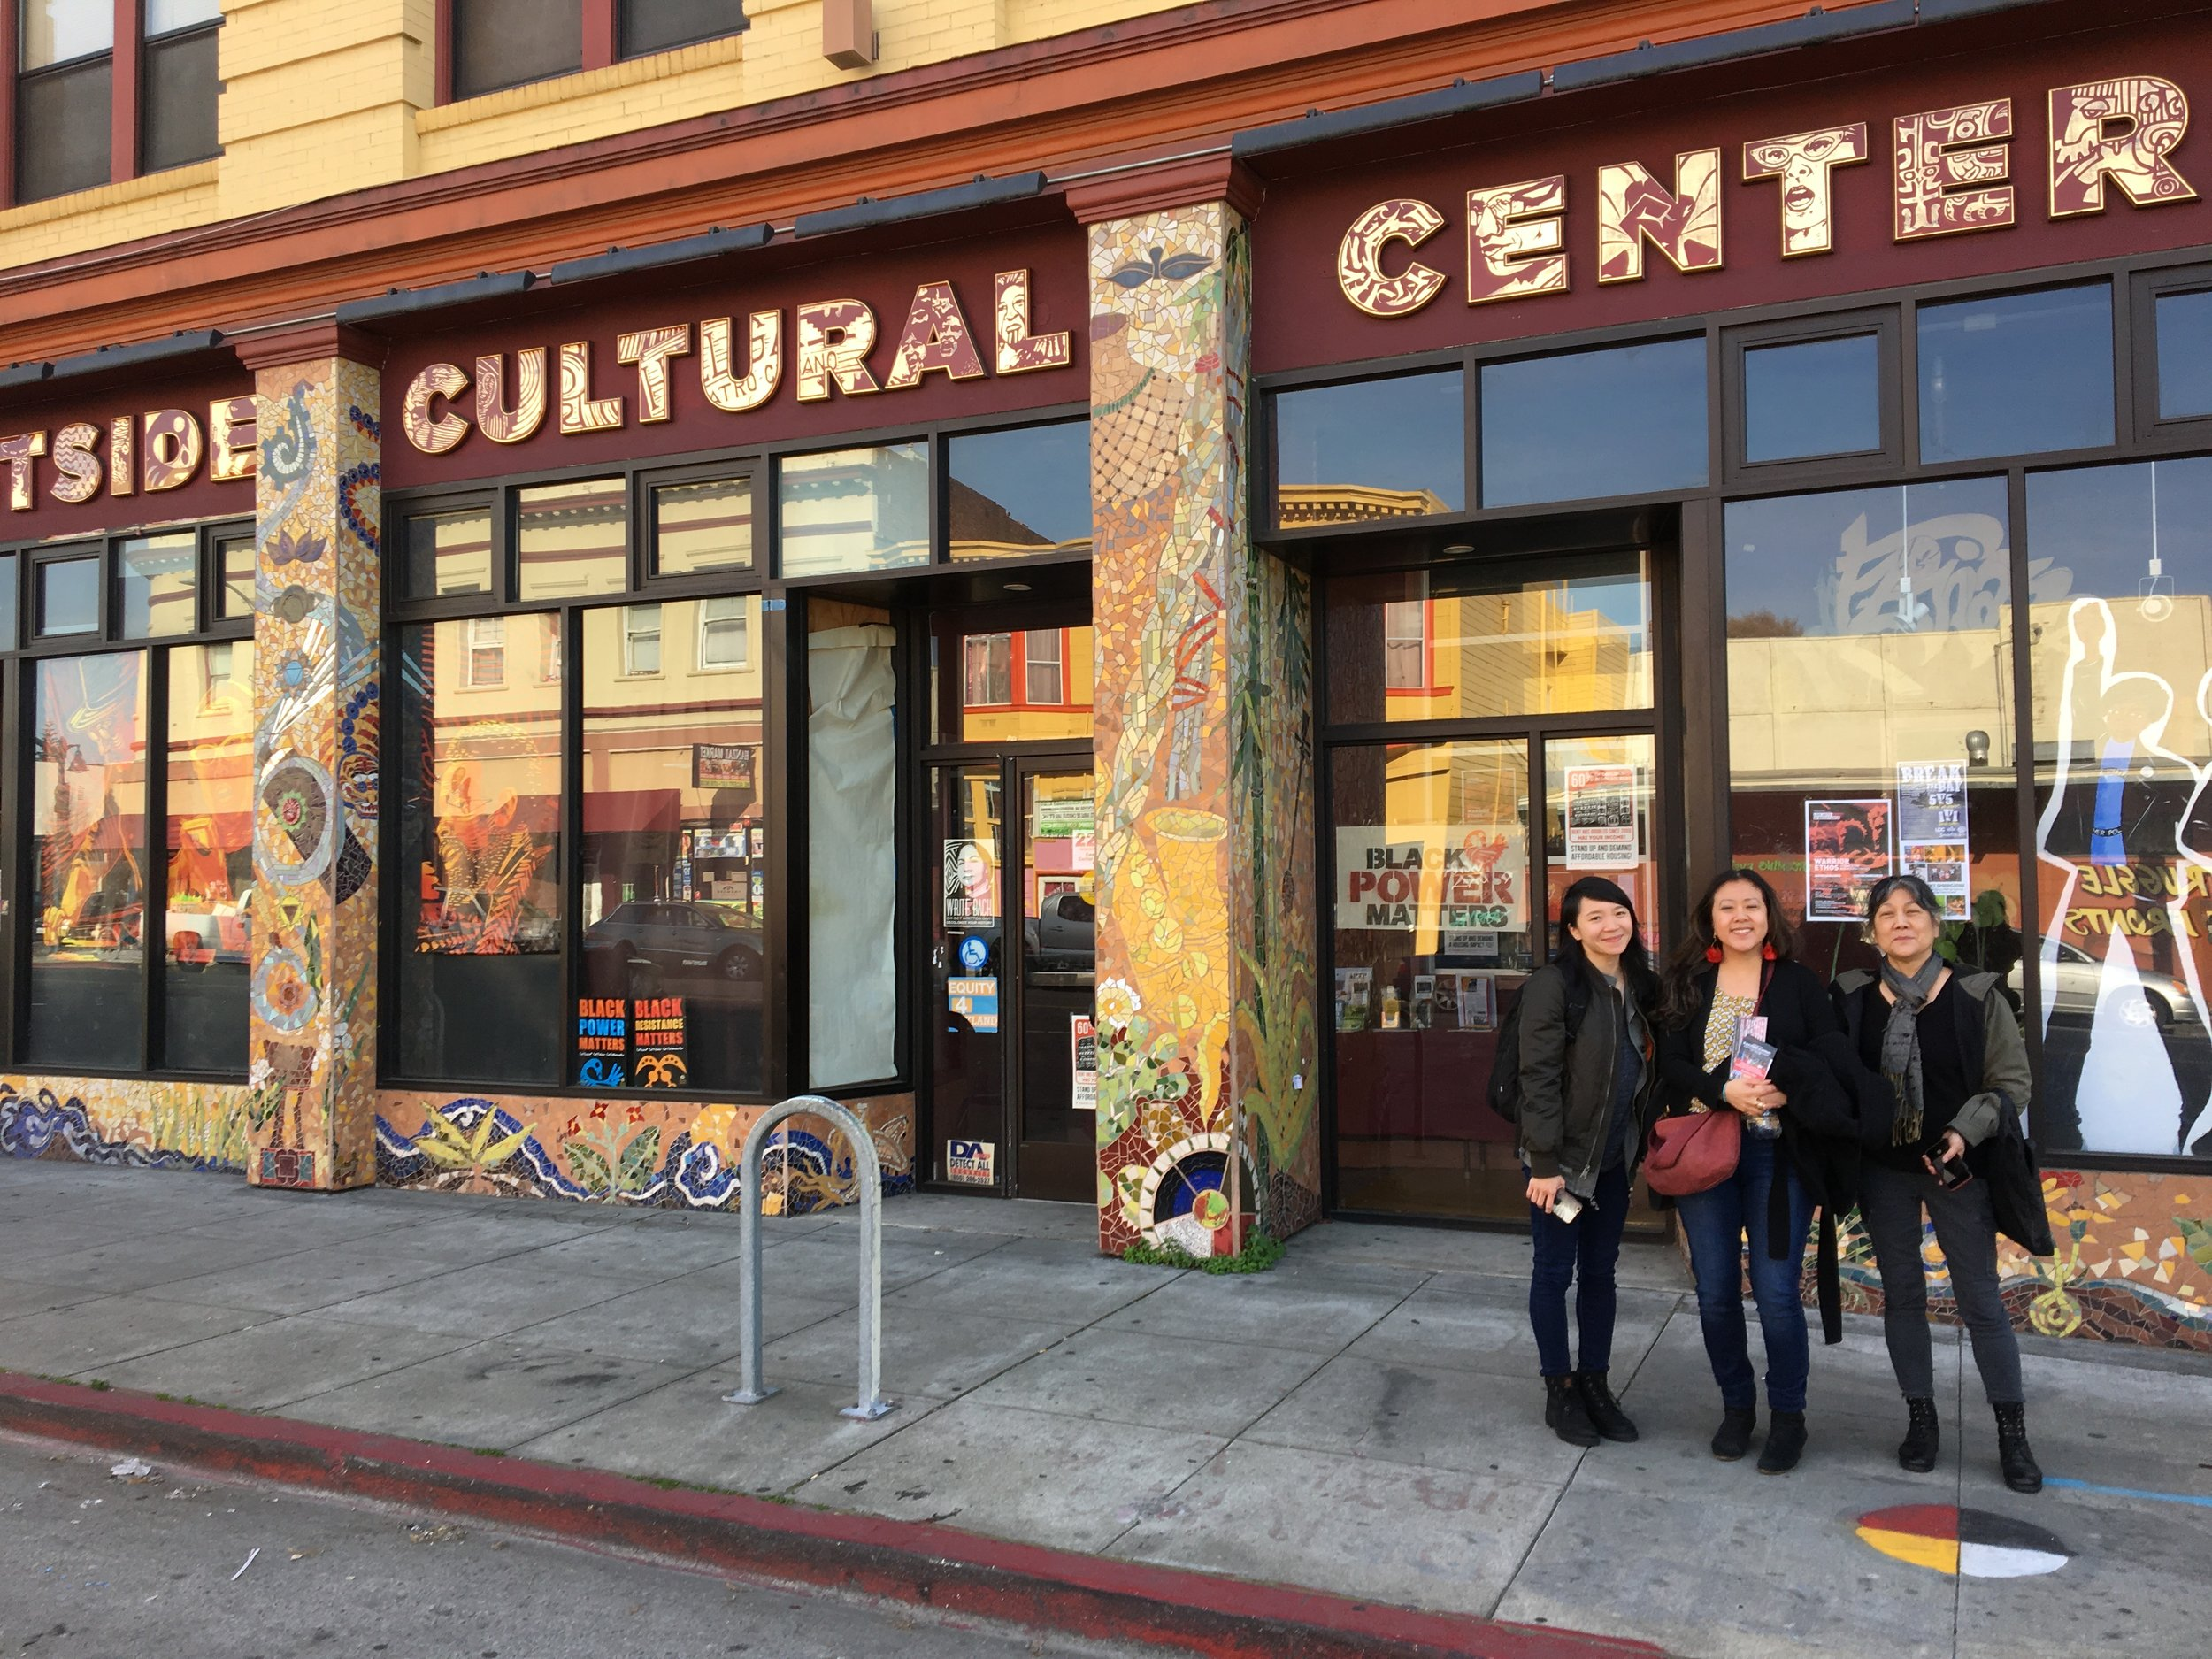 CAB co-founders, Betty Yu, ManSee Kong and Tomie Arai were recently invited to speak at the   Eastside Cultural Center   in Oakland. After our talk,Weston Teruya conducted an interview for his podcast,'unmaking' through Art Practical, that focuses on the work of artists of color. To hear the (un)making podcast:   https://soundcloud.com/artpractical/sets/un-making-podcast